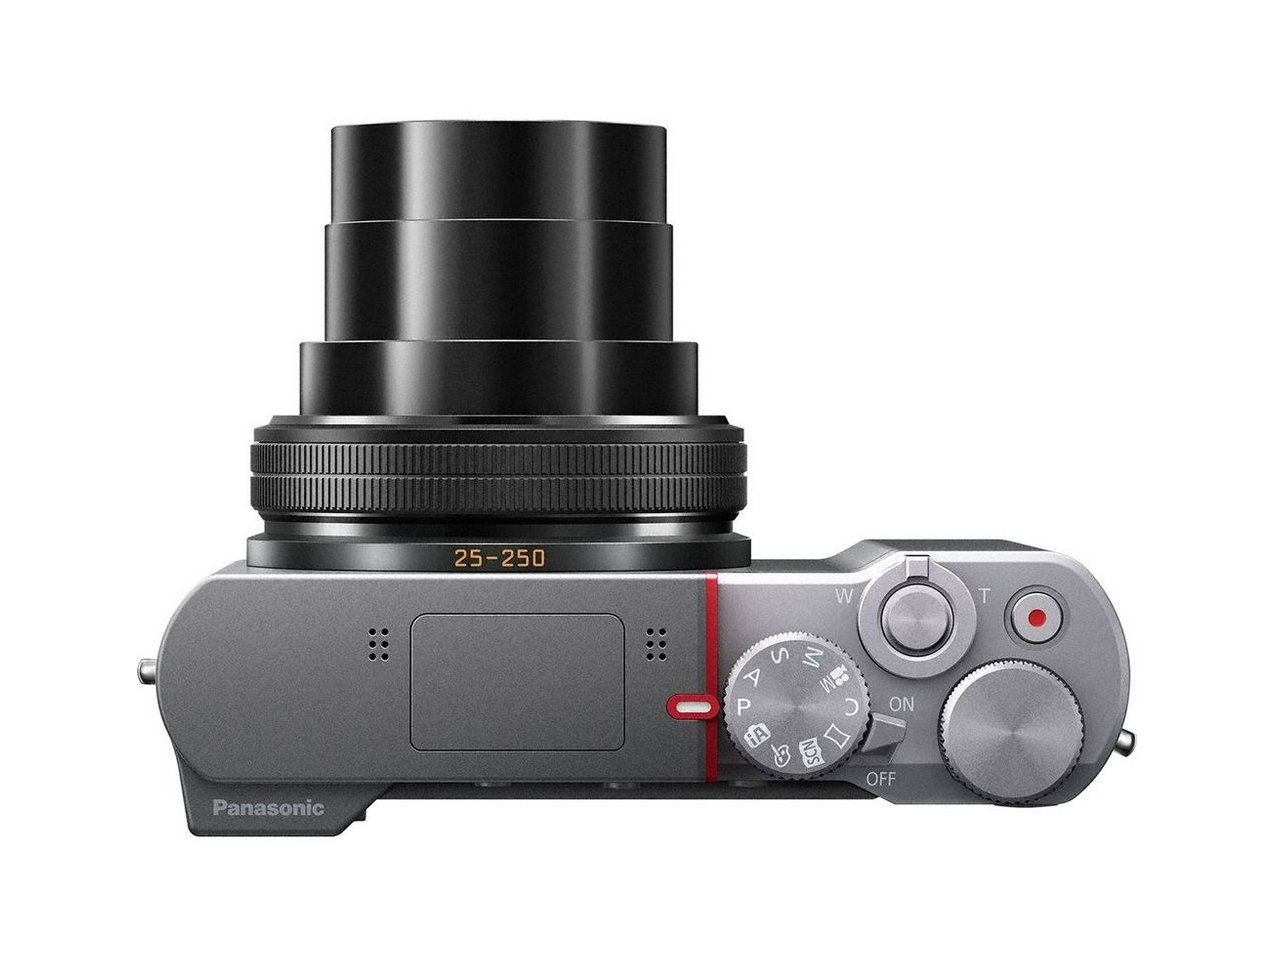 LUMIX 4K Digital Camera with 20MP Sensor, 25-250mm F/2.8-5.9